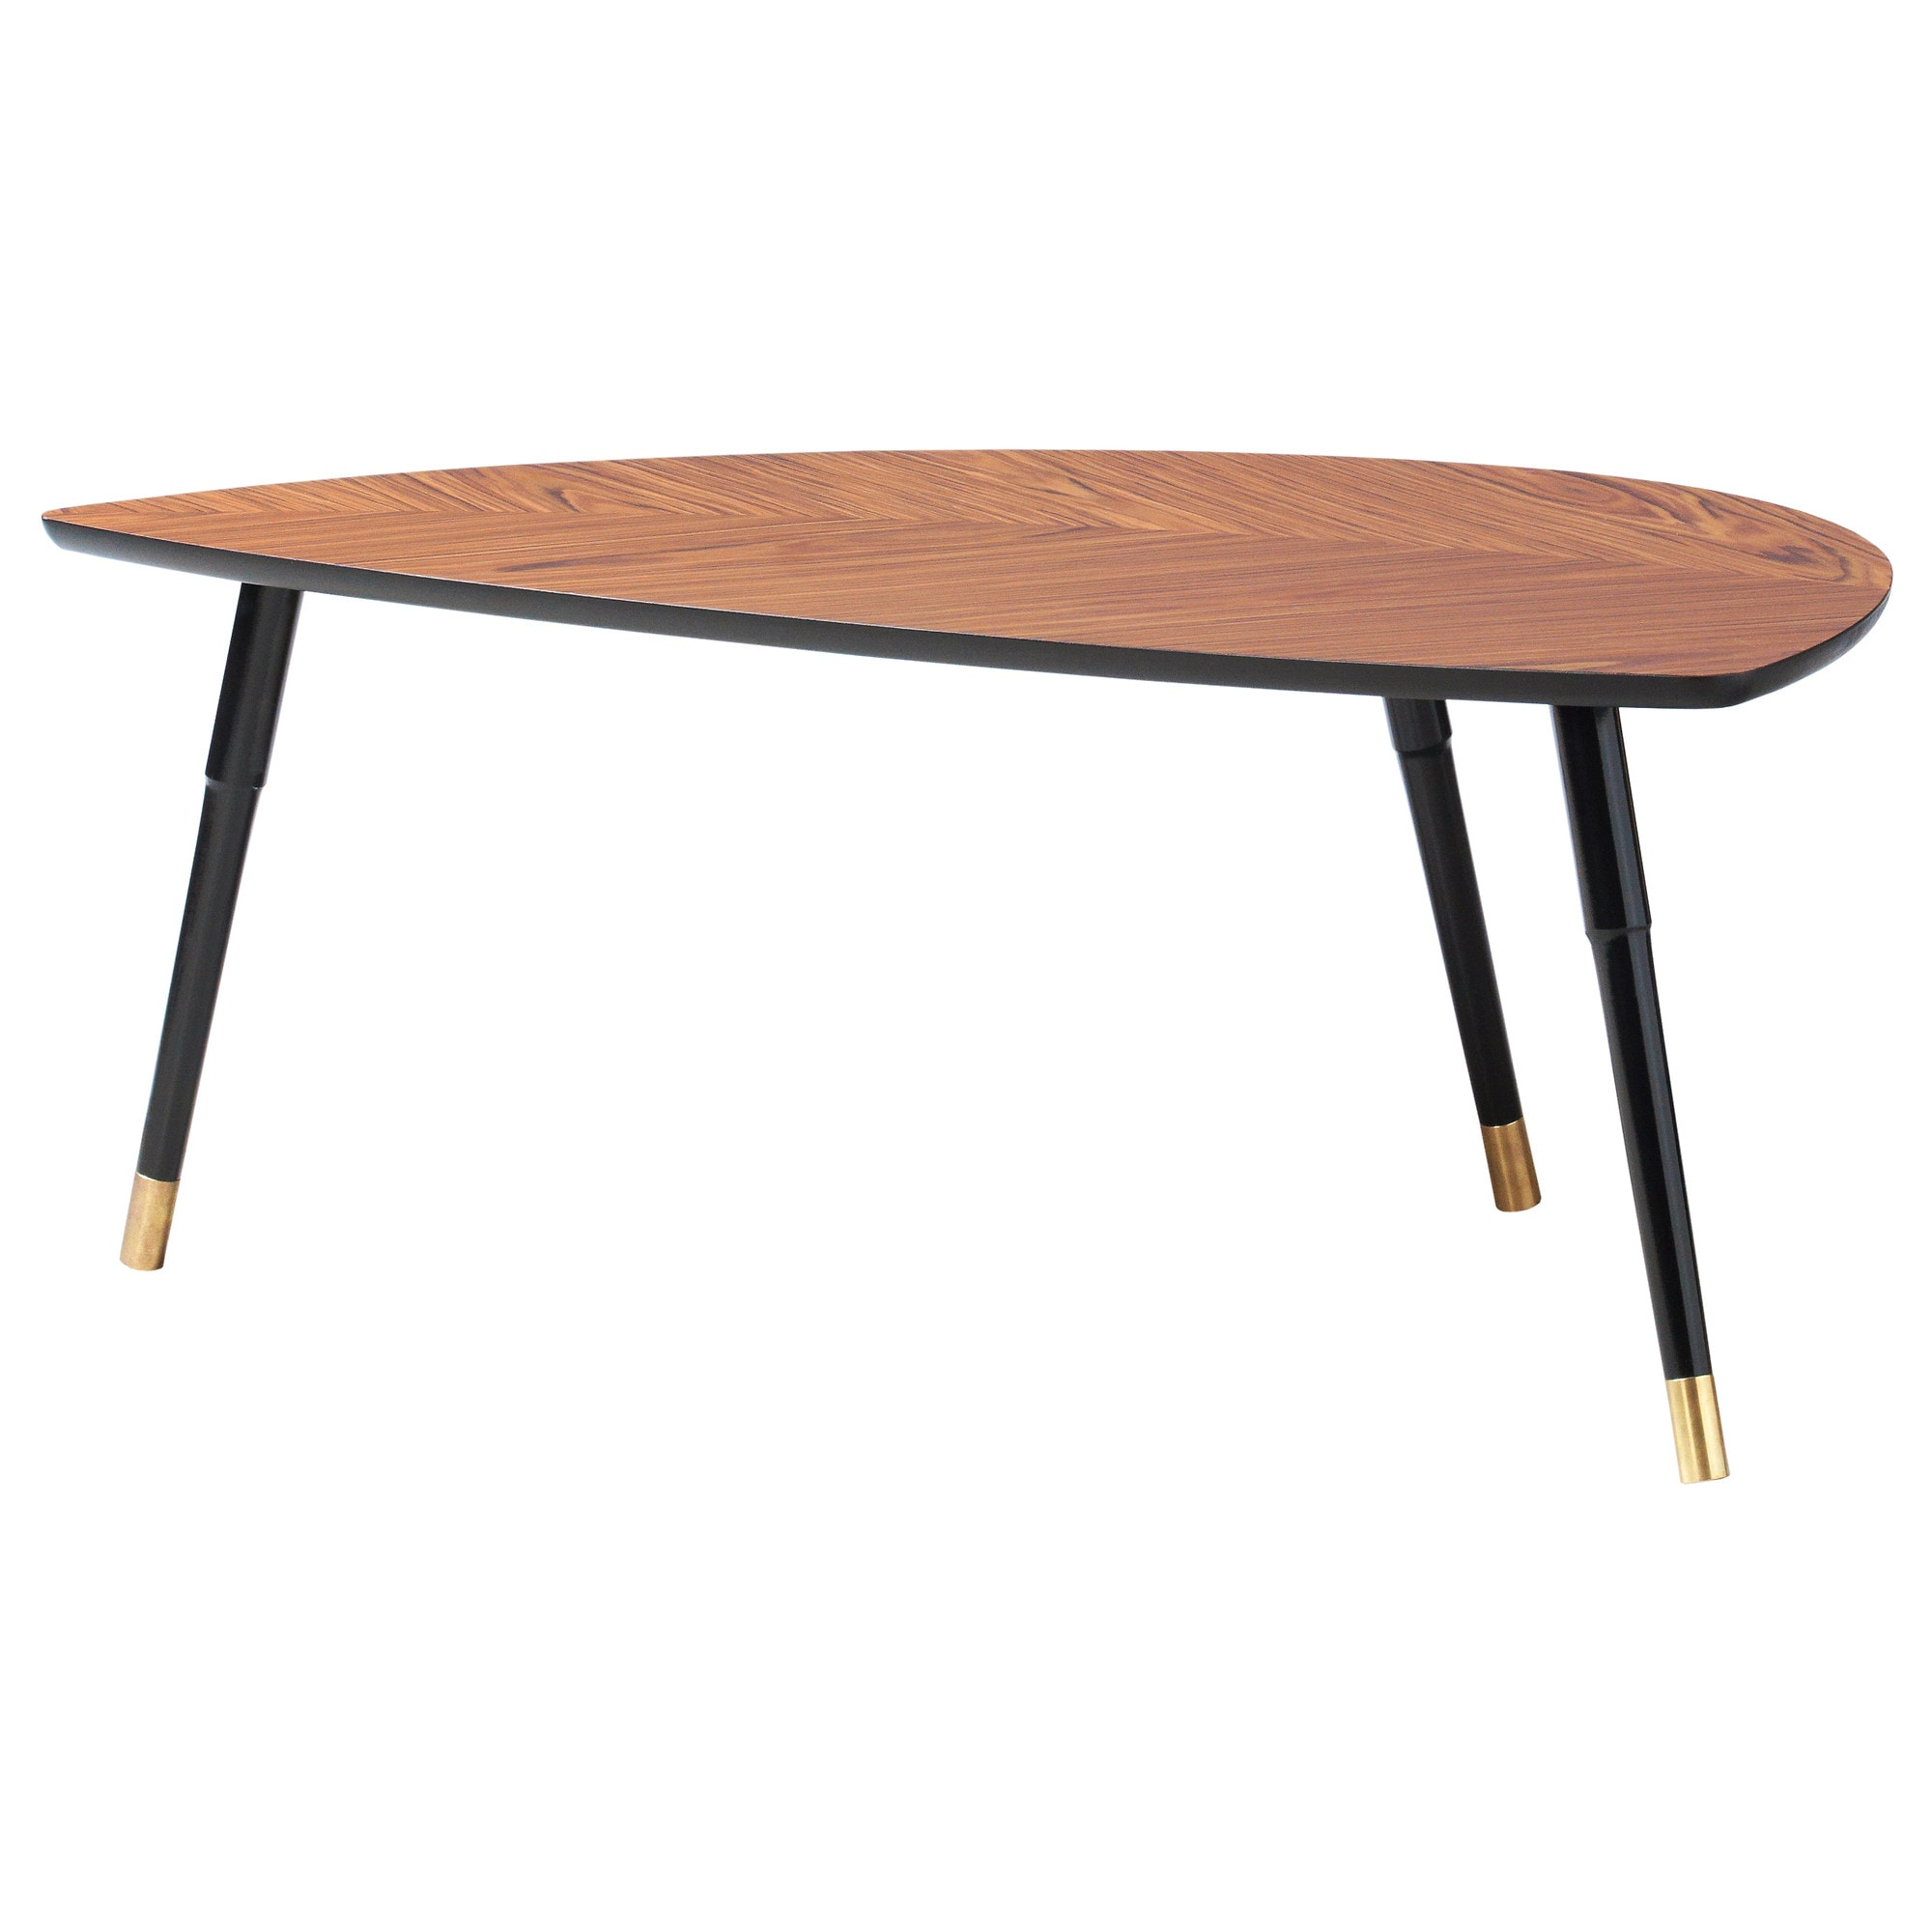 L–VBACKEN Coffee table IKEA